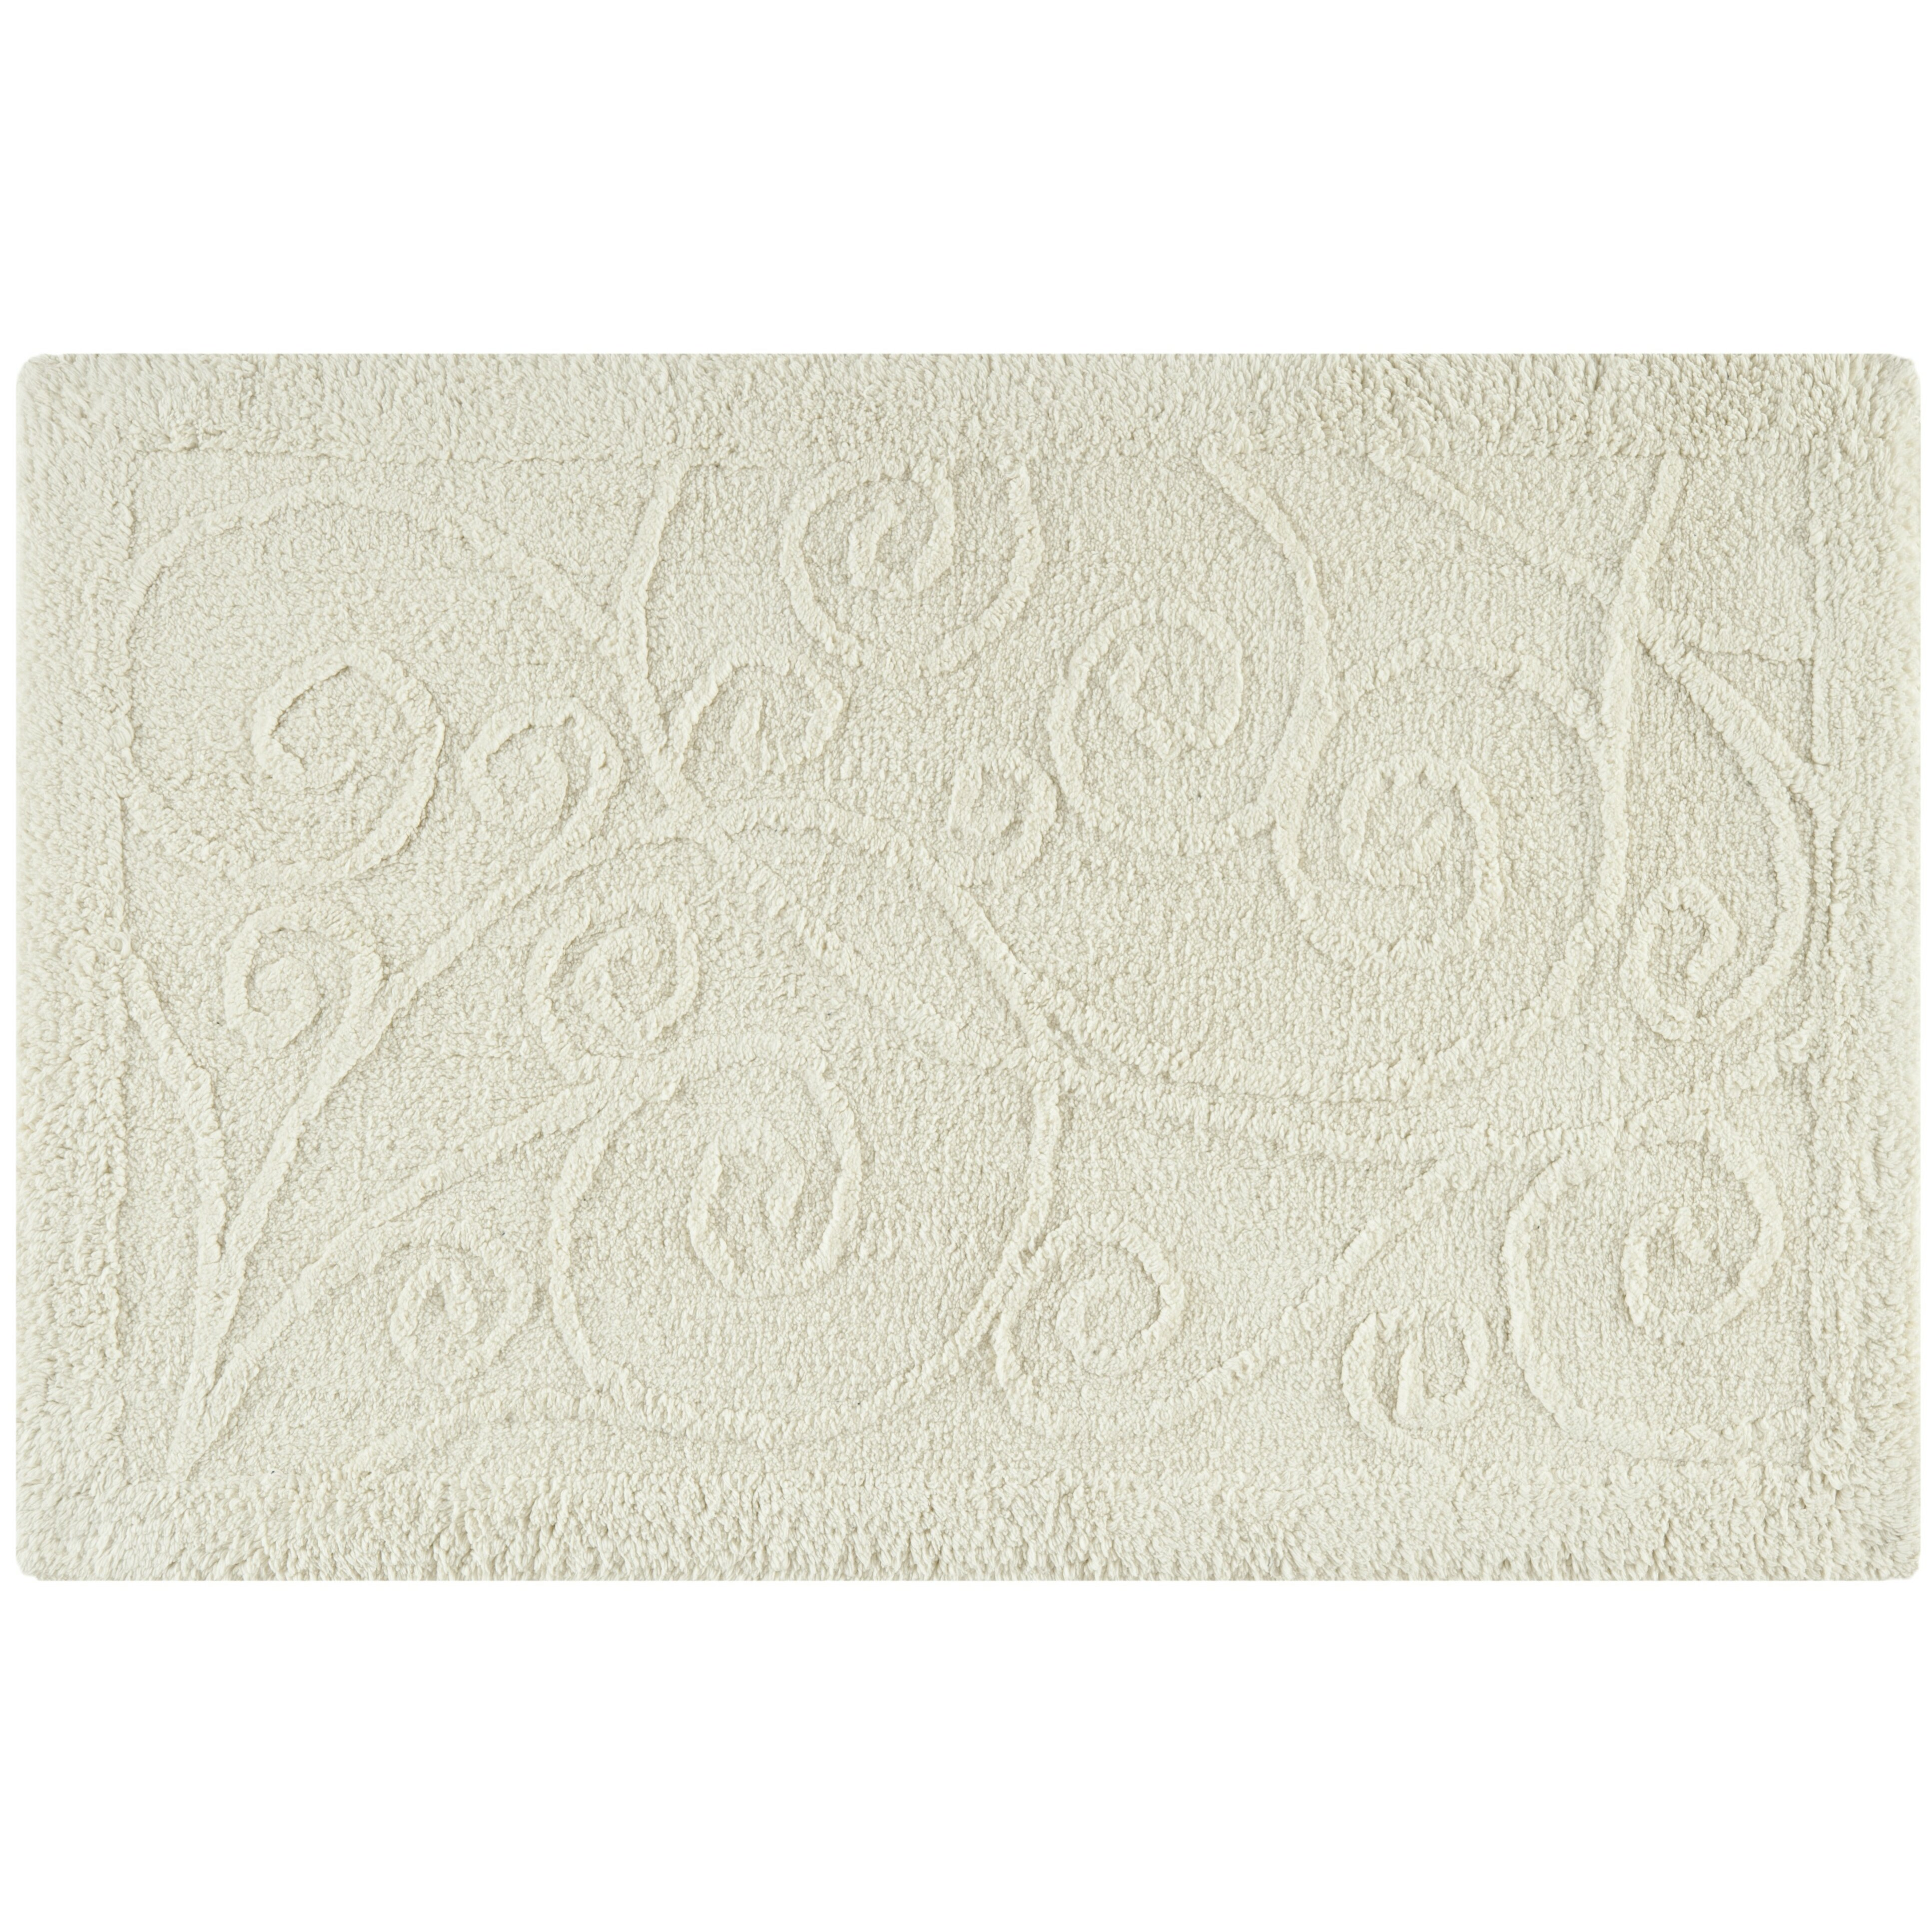 Safavieh plush master bath rug vi reviews wayfair for Master bathroom rugs